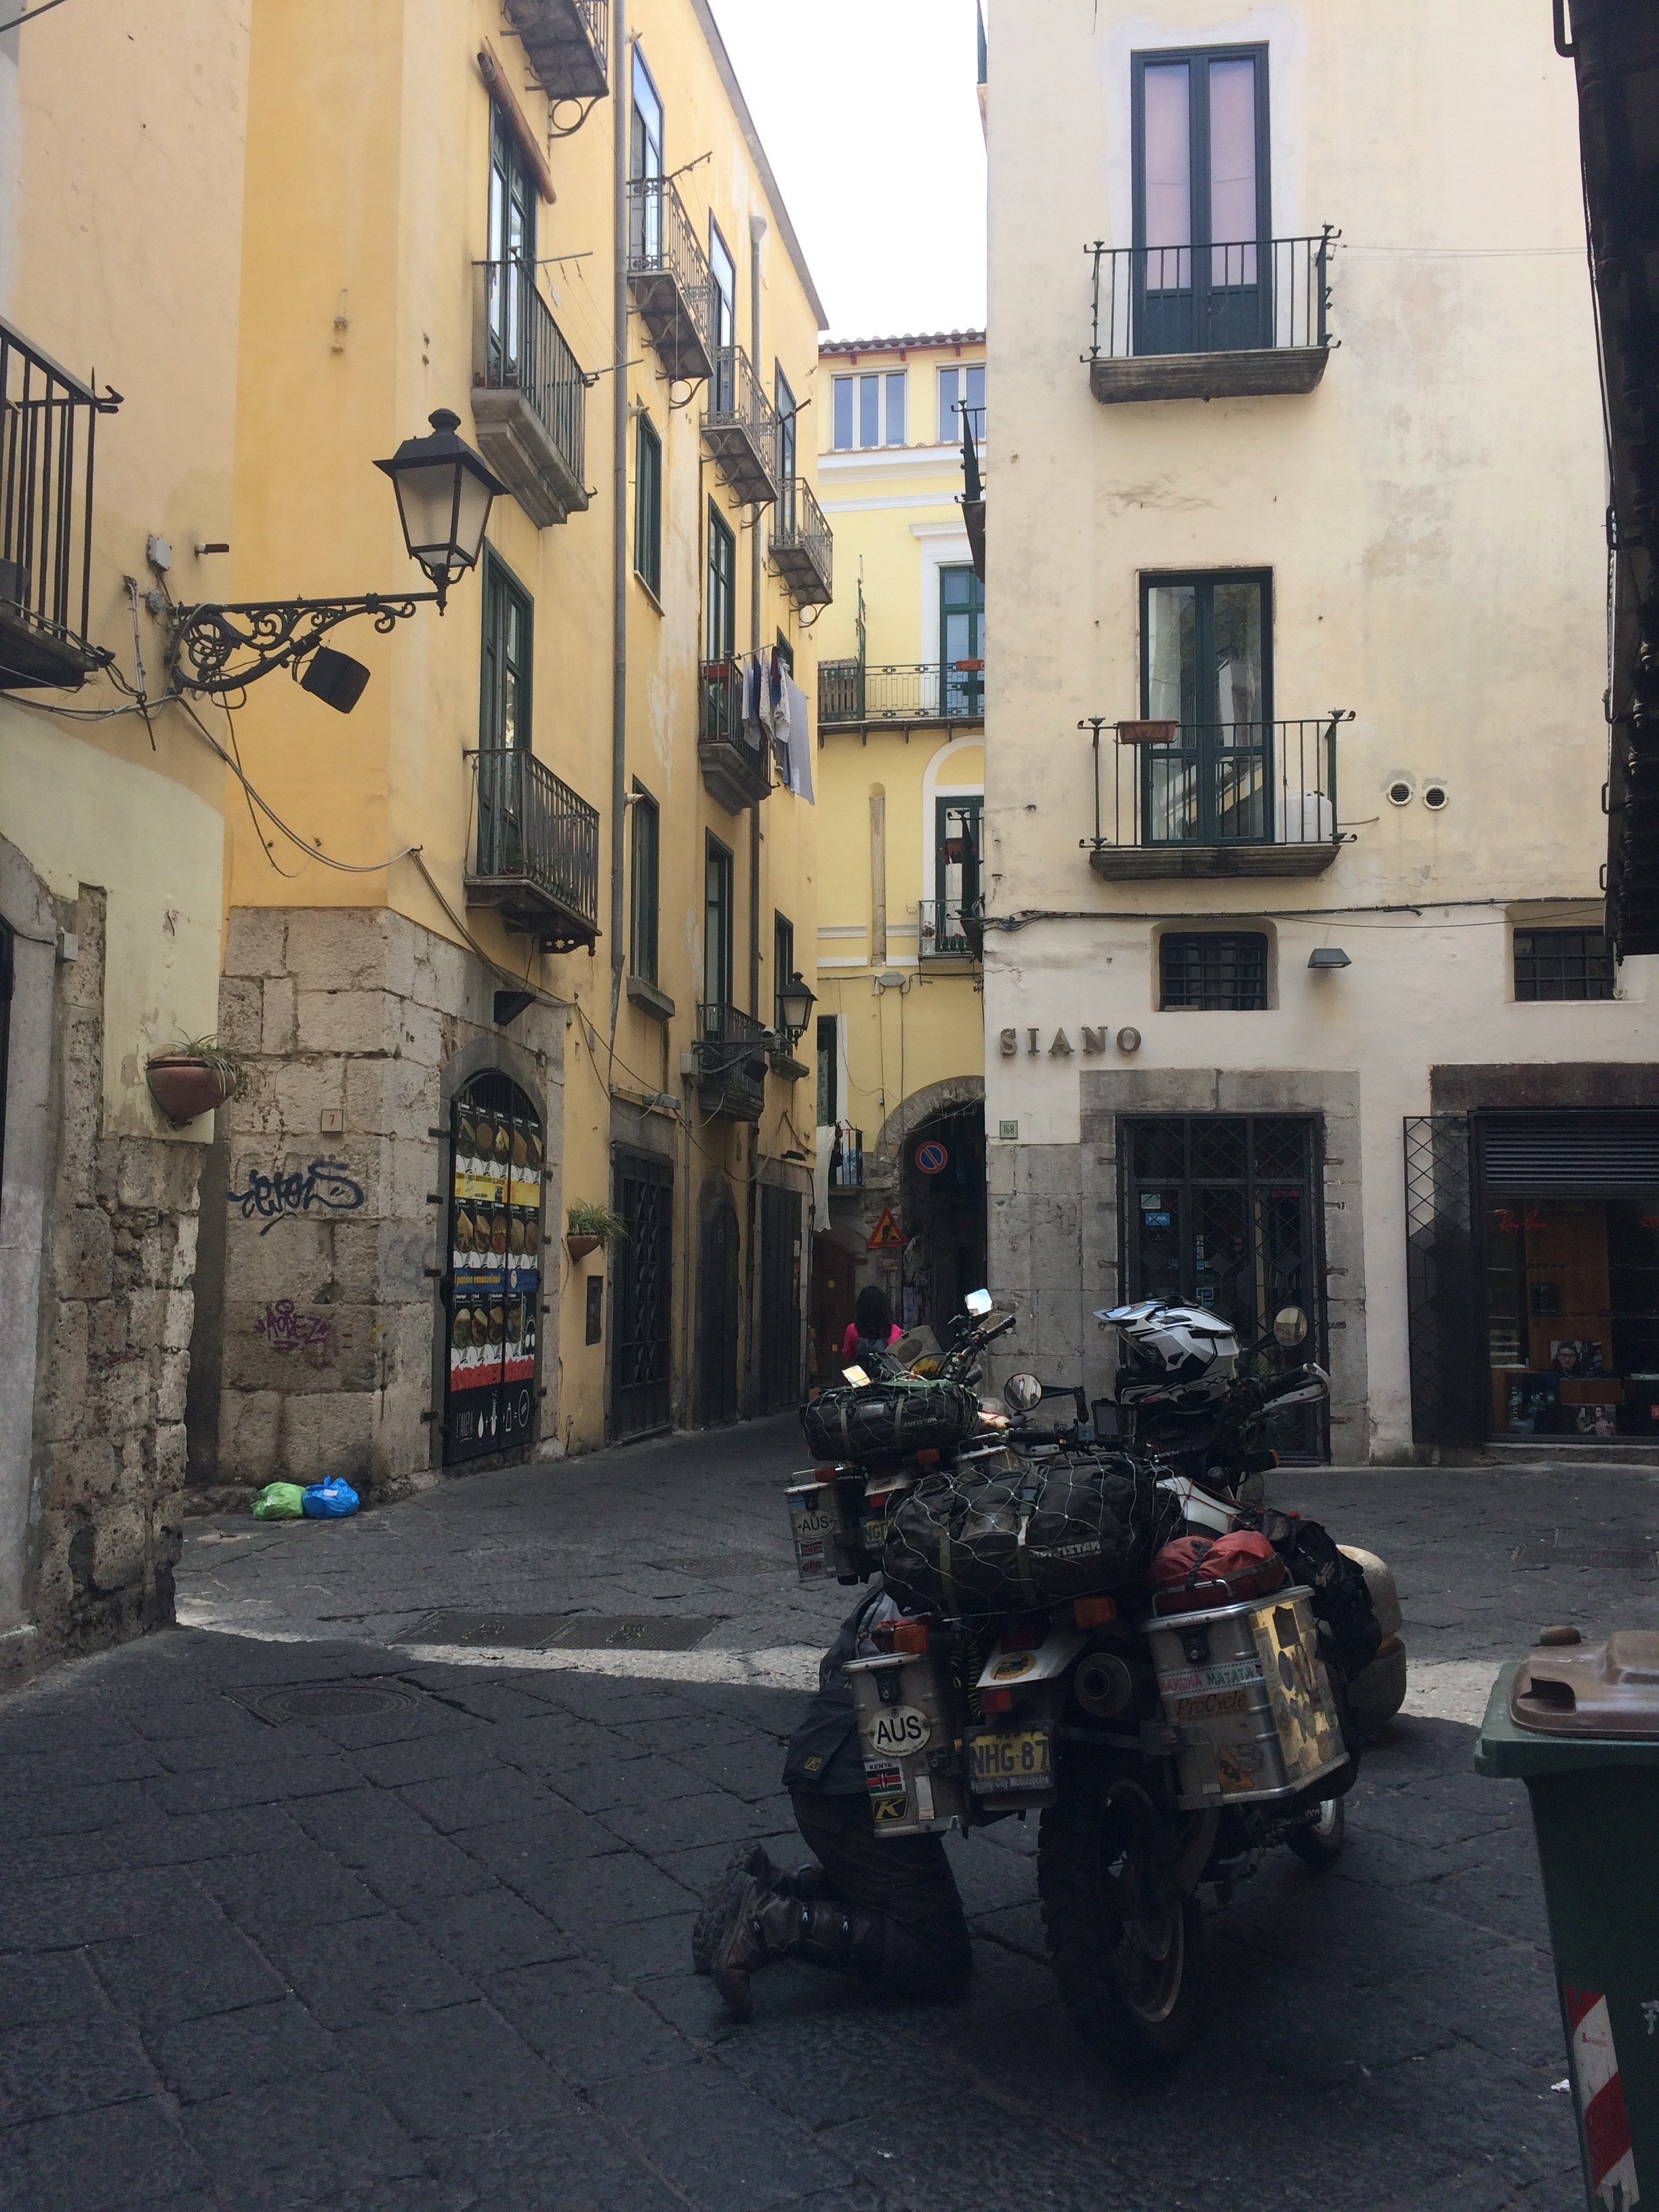 Diagnosing a high idle in the alleys of Salerno